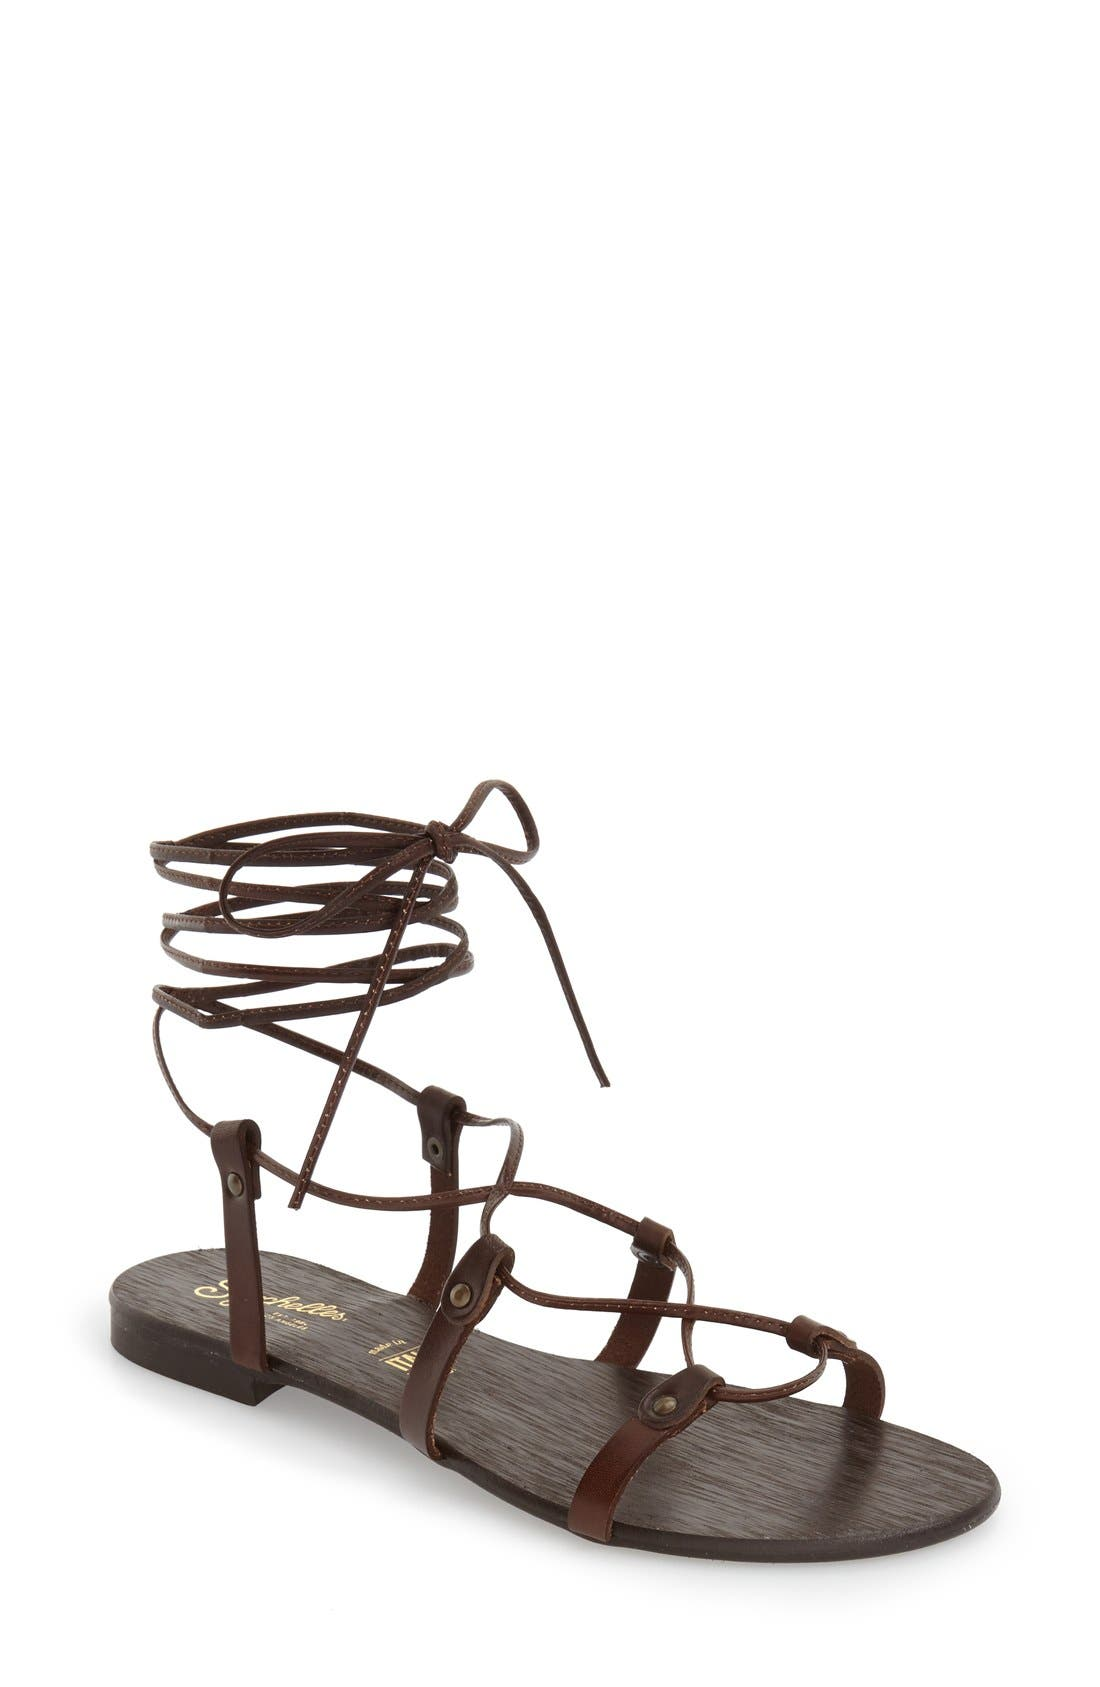 Main Image - Seychelles 'Gawk' Lace-Up Sandal (Women)